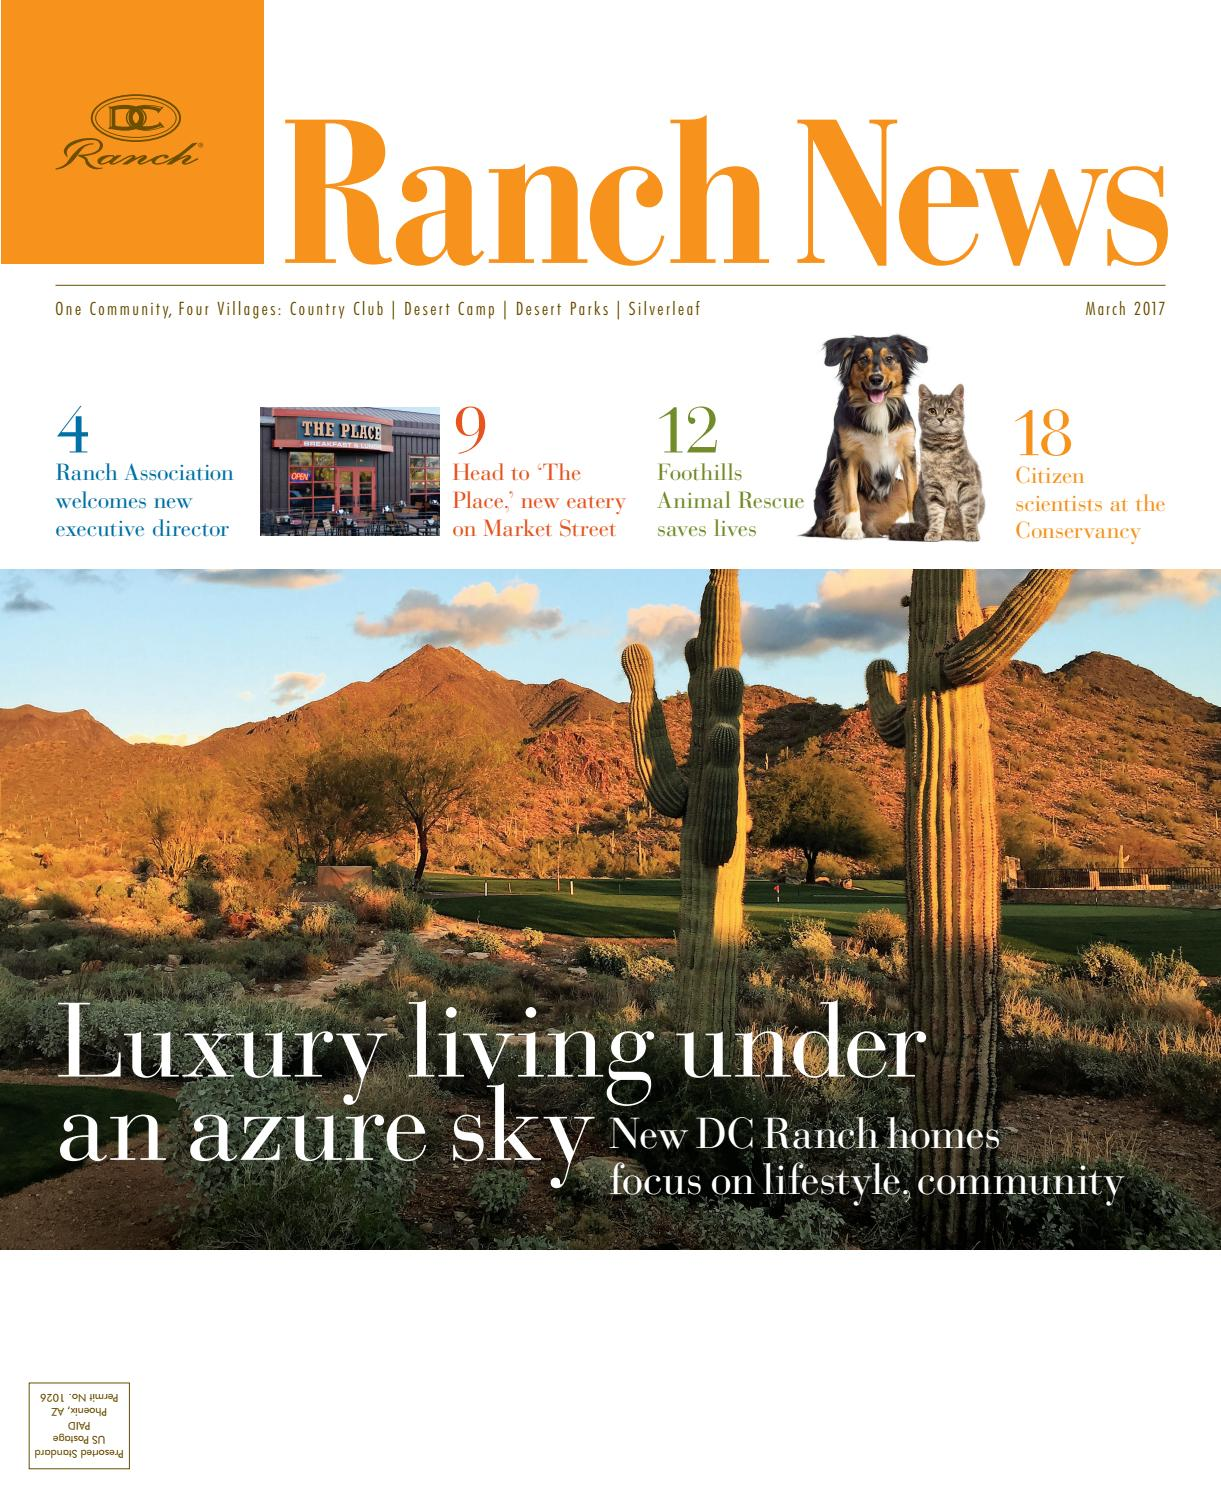 DC Ranch News   March 2017 By Republic Media Content Marketing   Issuu